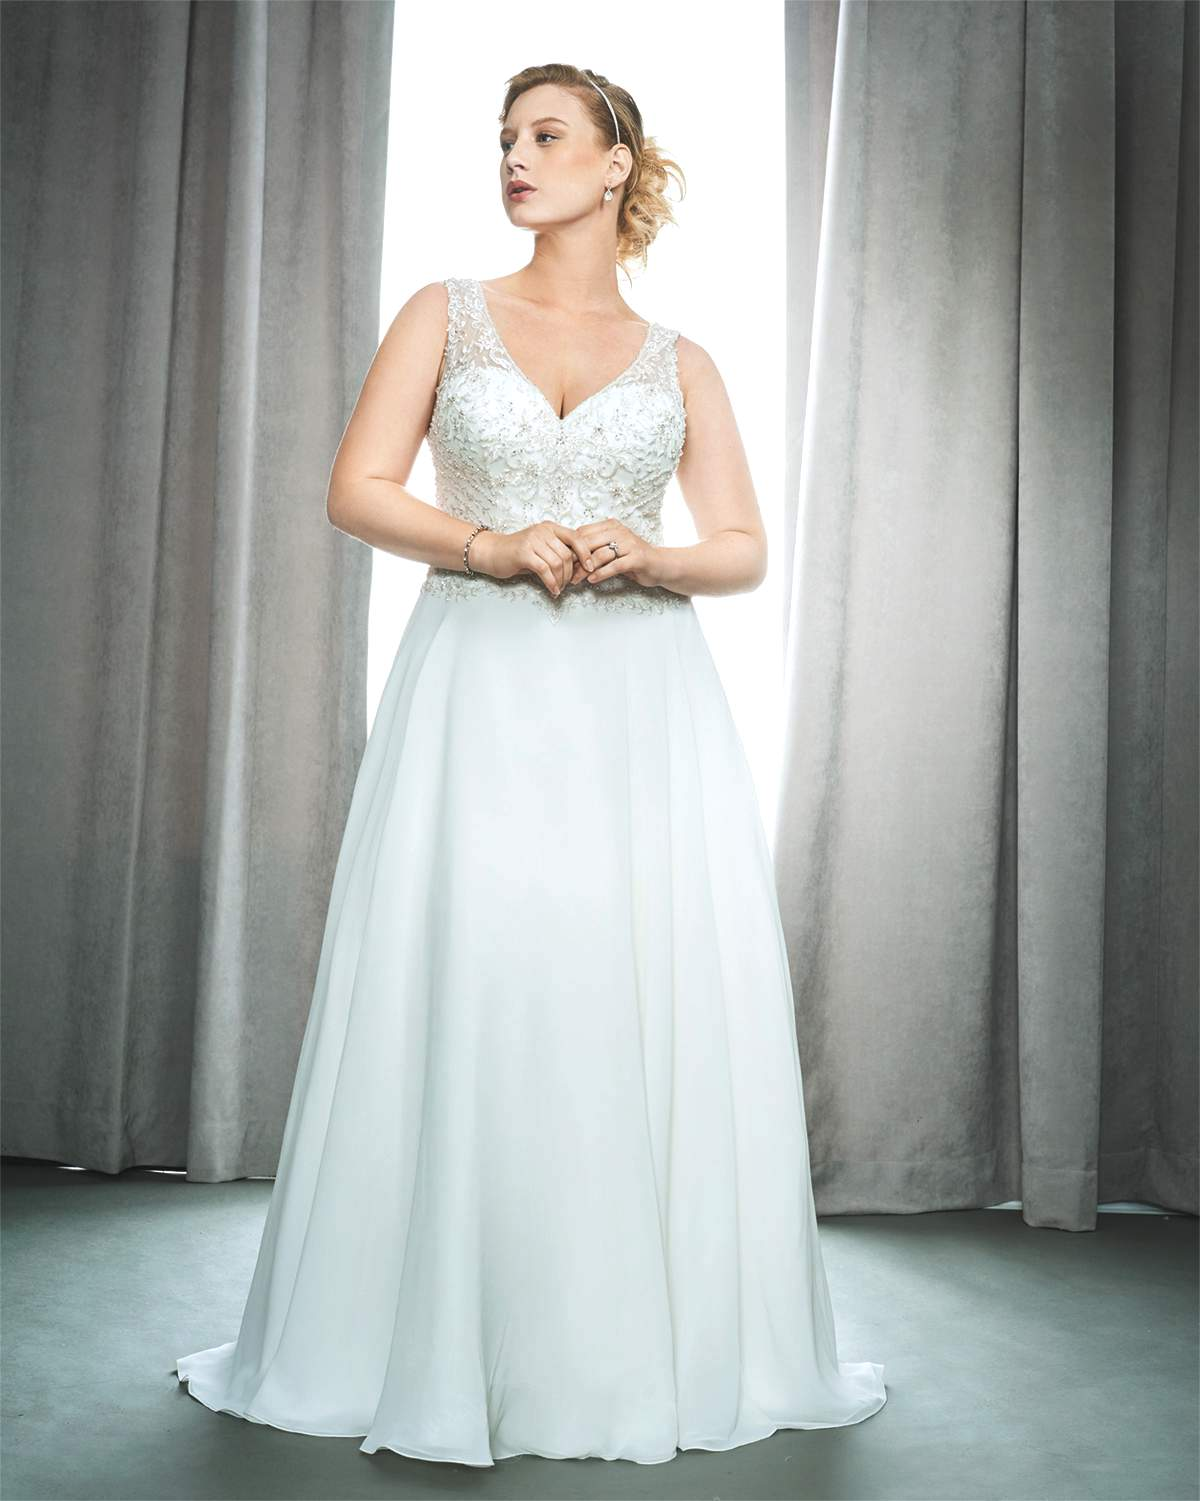 Plus Size Wedding Dresses Va : Plus va voom with size gowns love our wedding